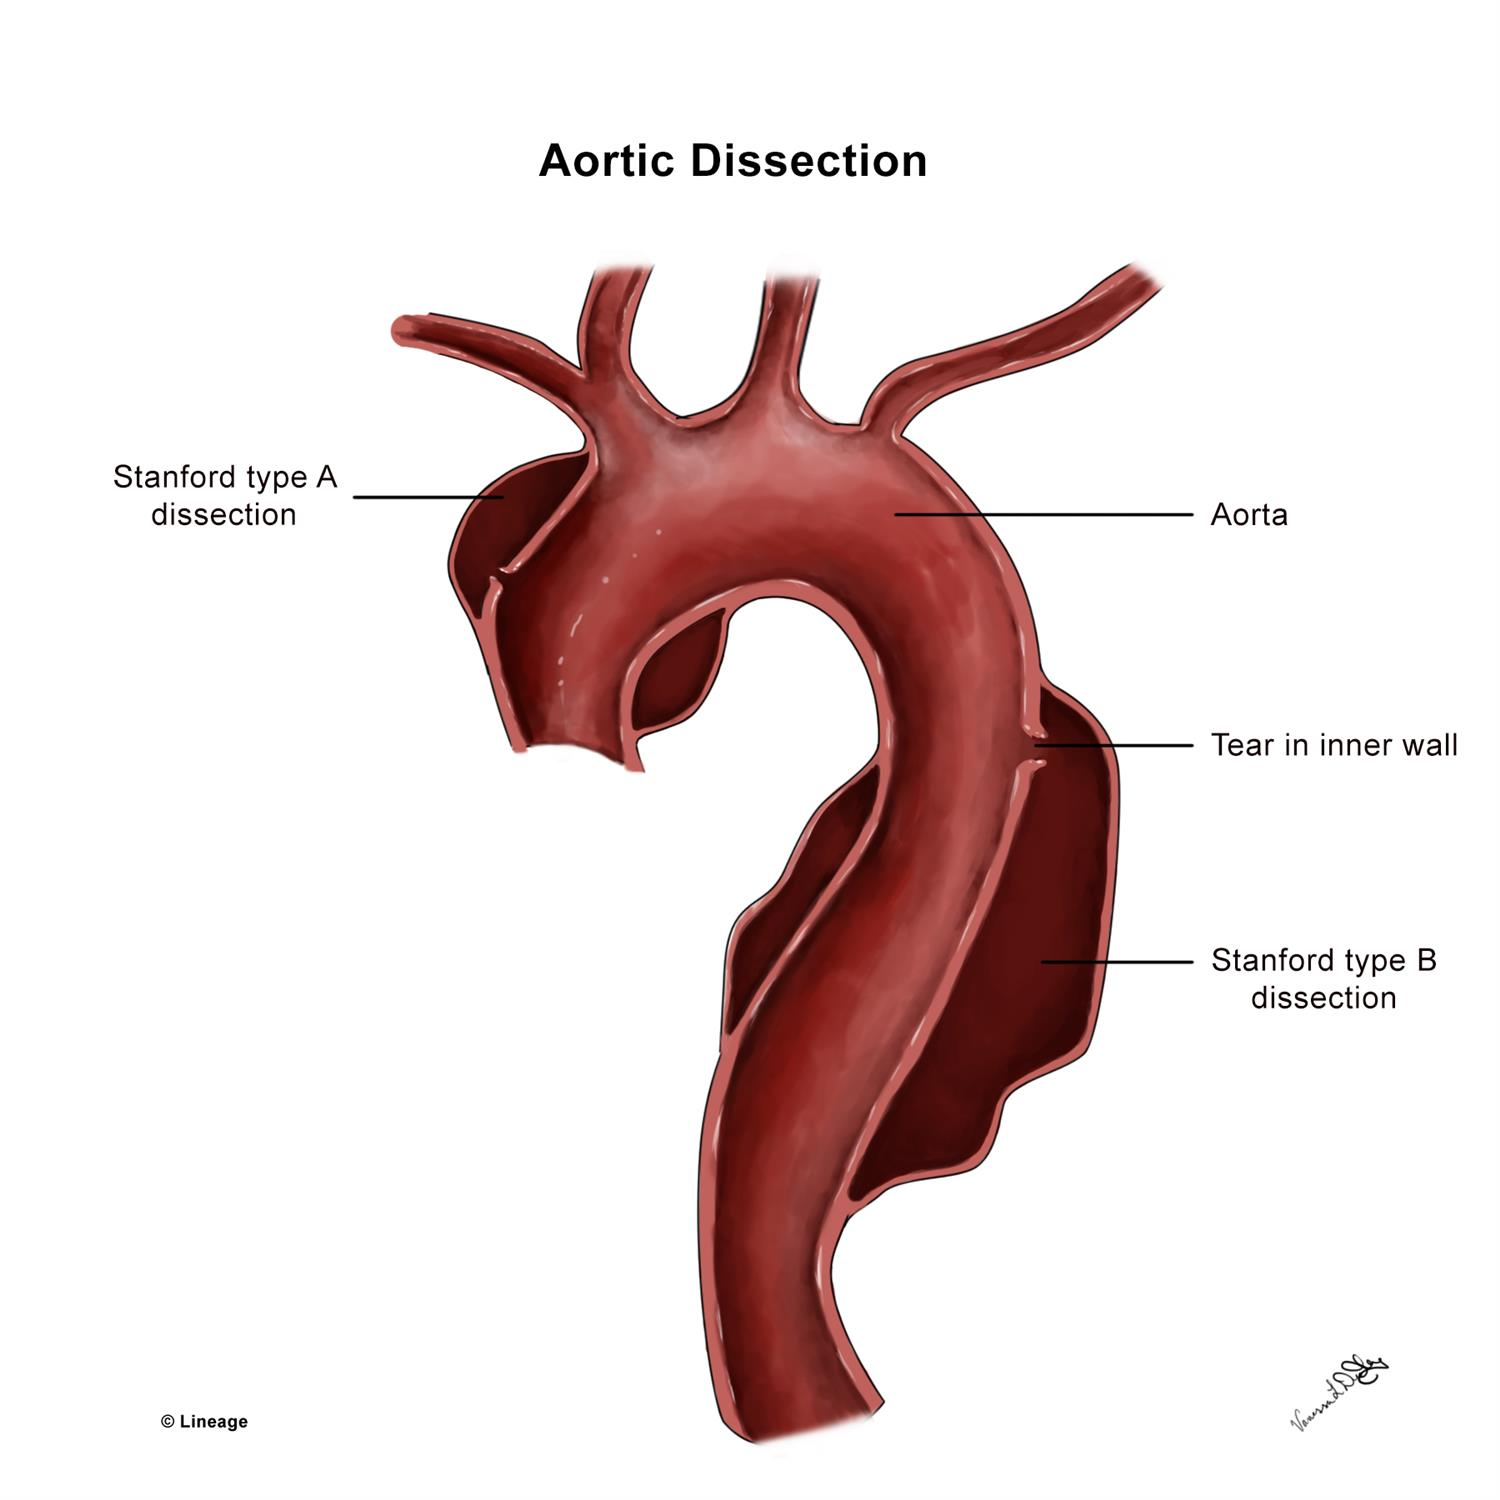 https://upload.medbullets.com/topic/120030/images/09122017vldcardianaorticdissectionmmedits.jpg